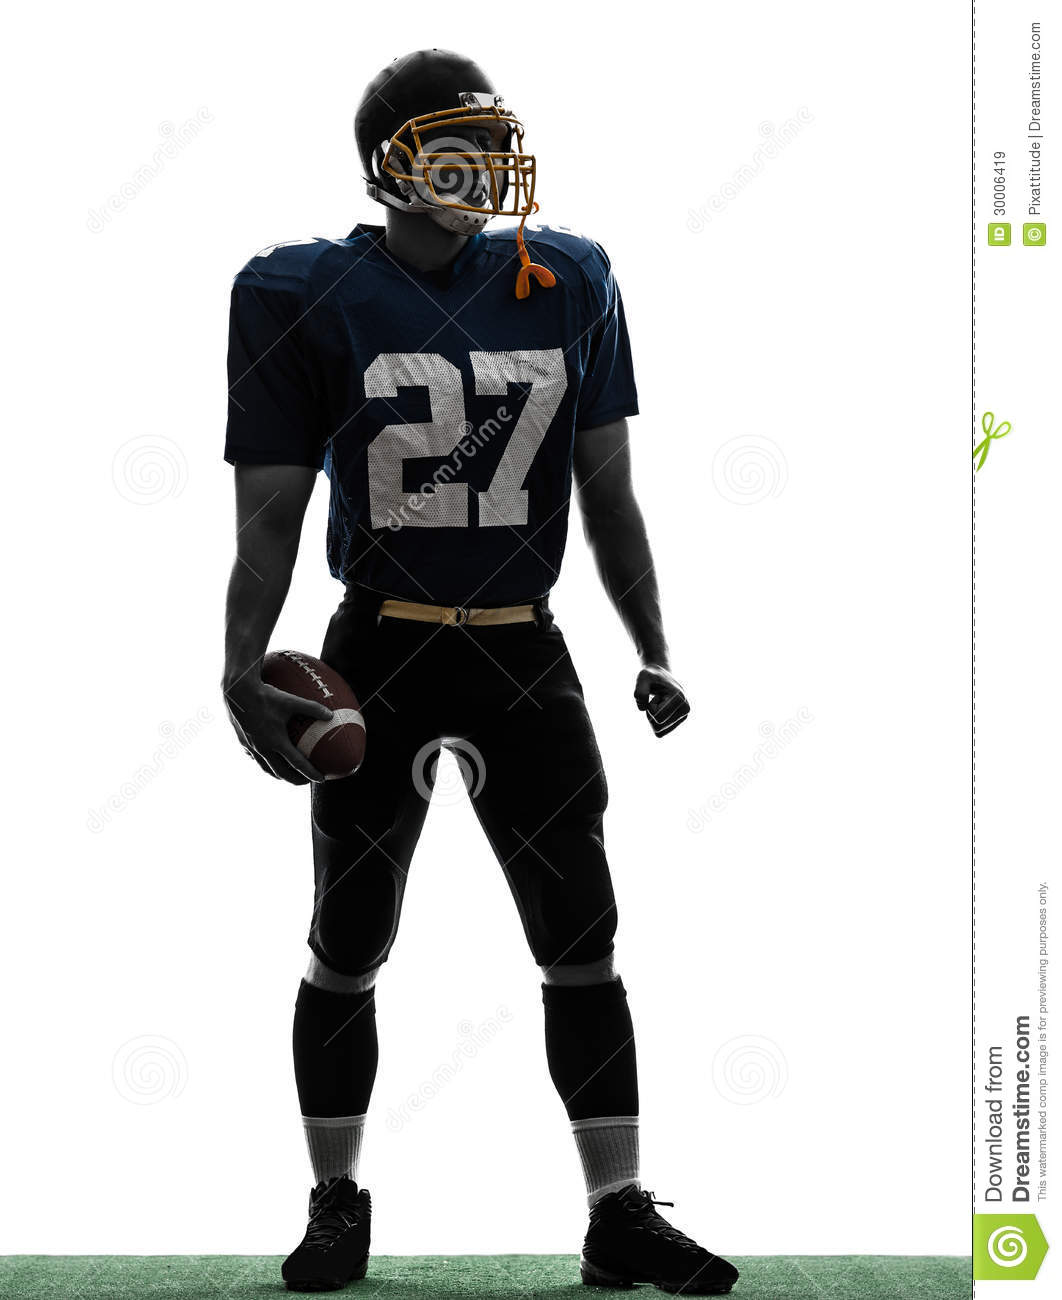 Quarterback Clipart Images Royalty Free St...